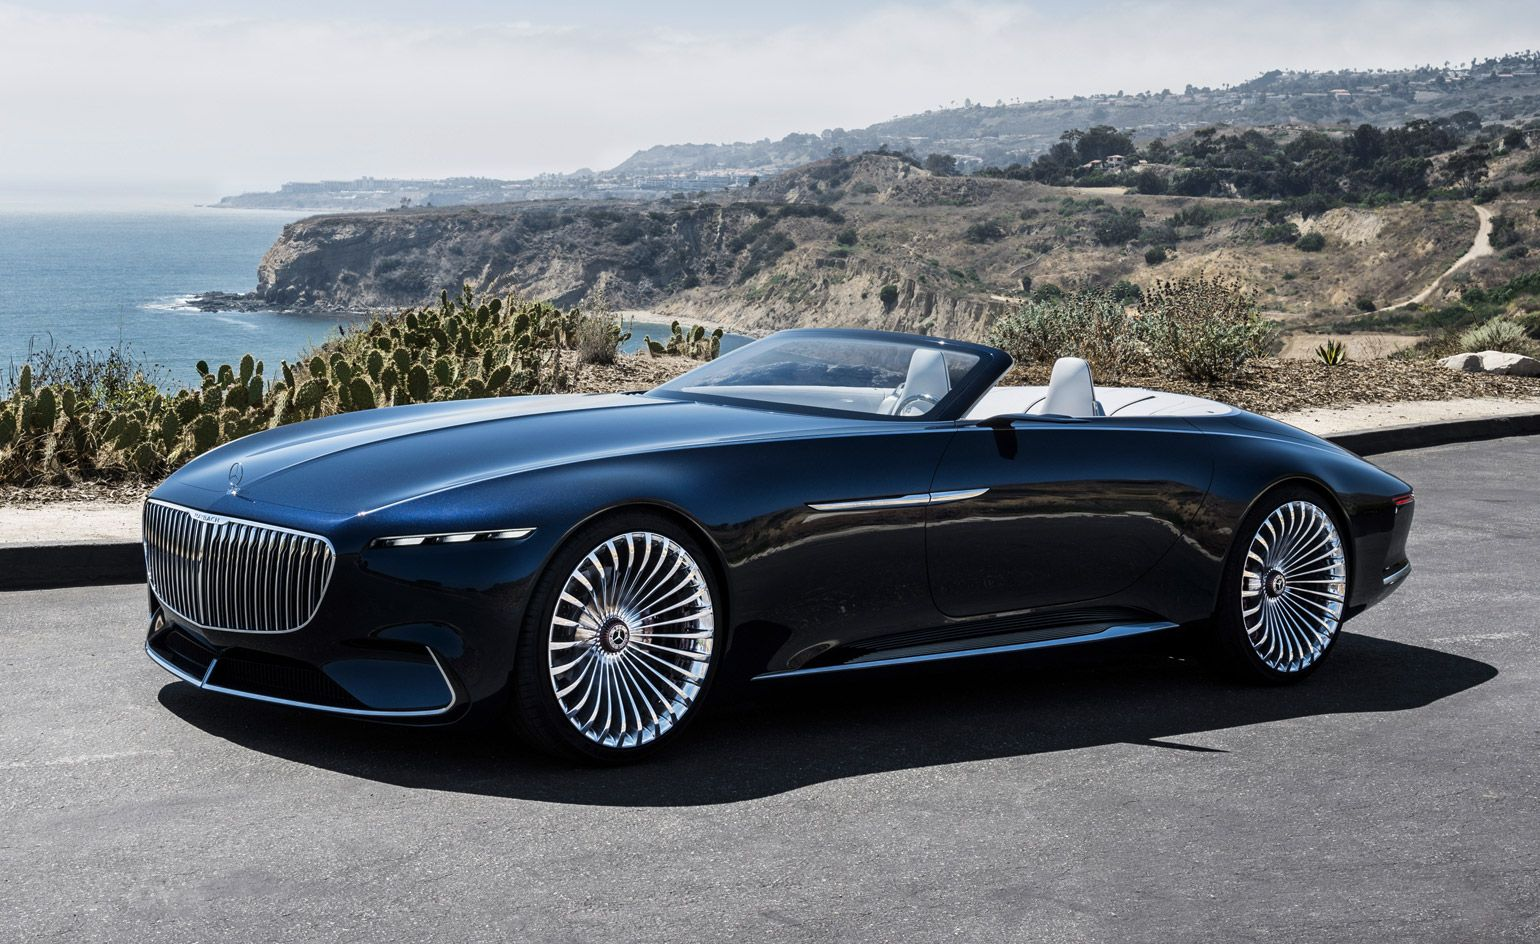 The New Reality Mercedes Maybach Unveils Super Luxury Electric Car Of Tomorrow S World Wallpaper